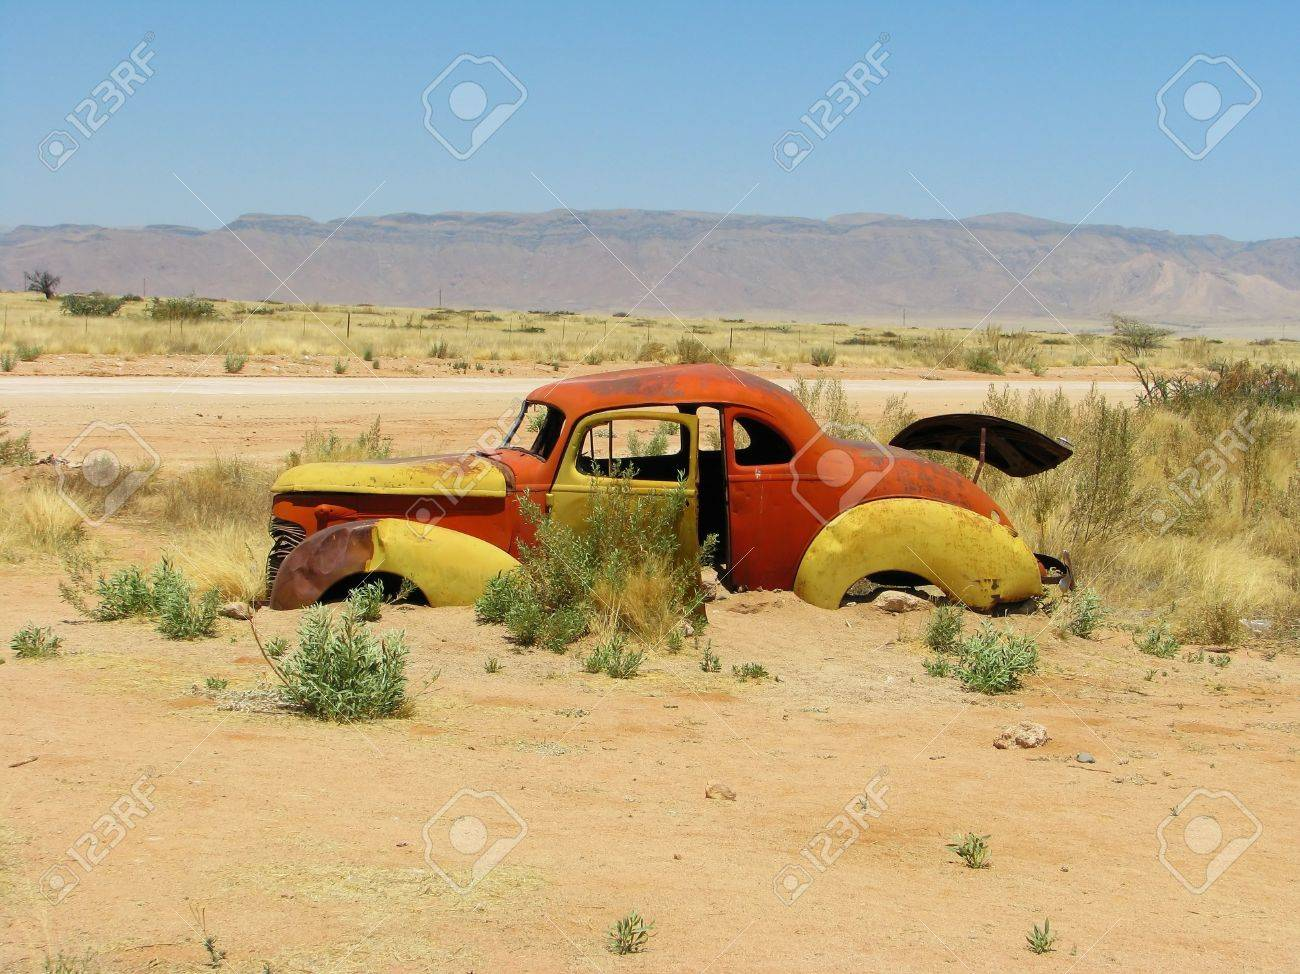 Old car wreck on Namibian desert, Solitaire, Namibia Stock Photo - 13591179